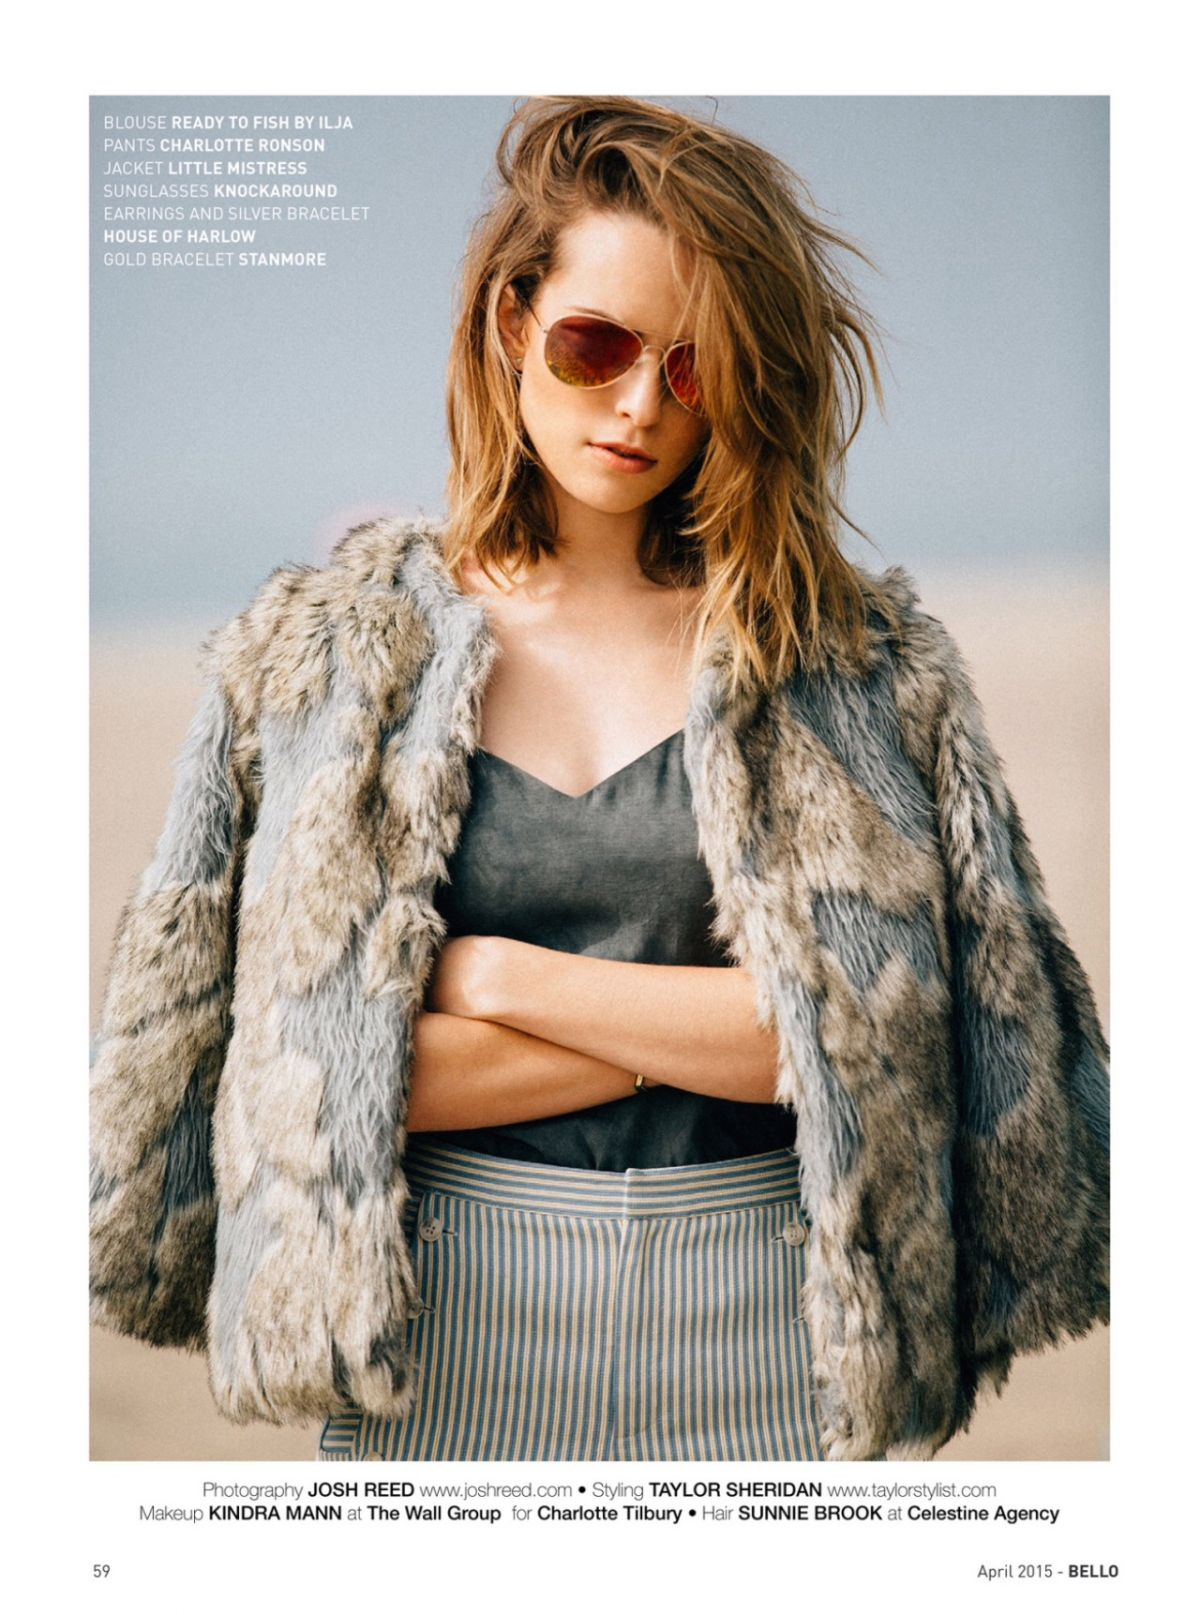 BRIDGIT MENDLER in Bello Magazine, April 2015 Issue